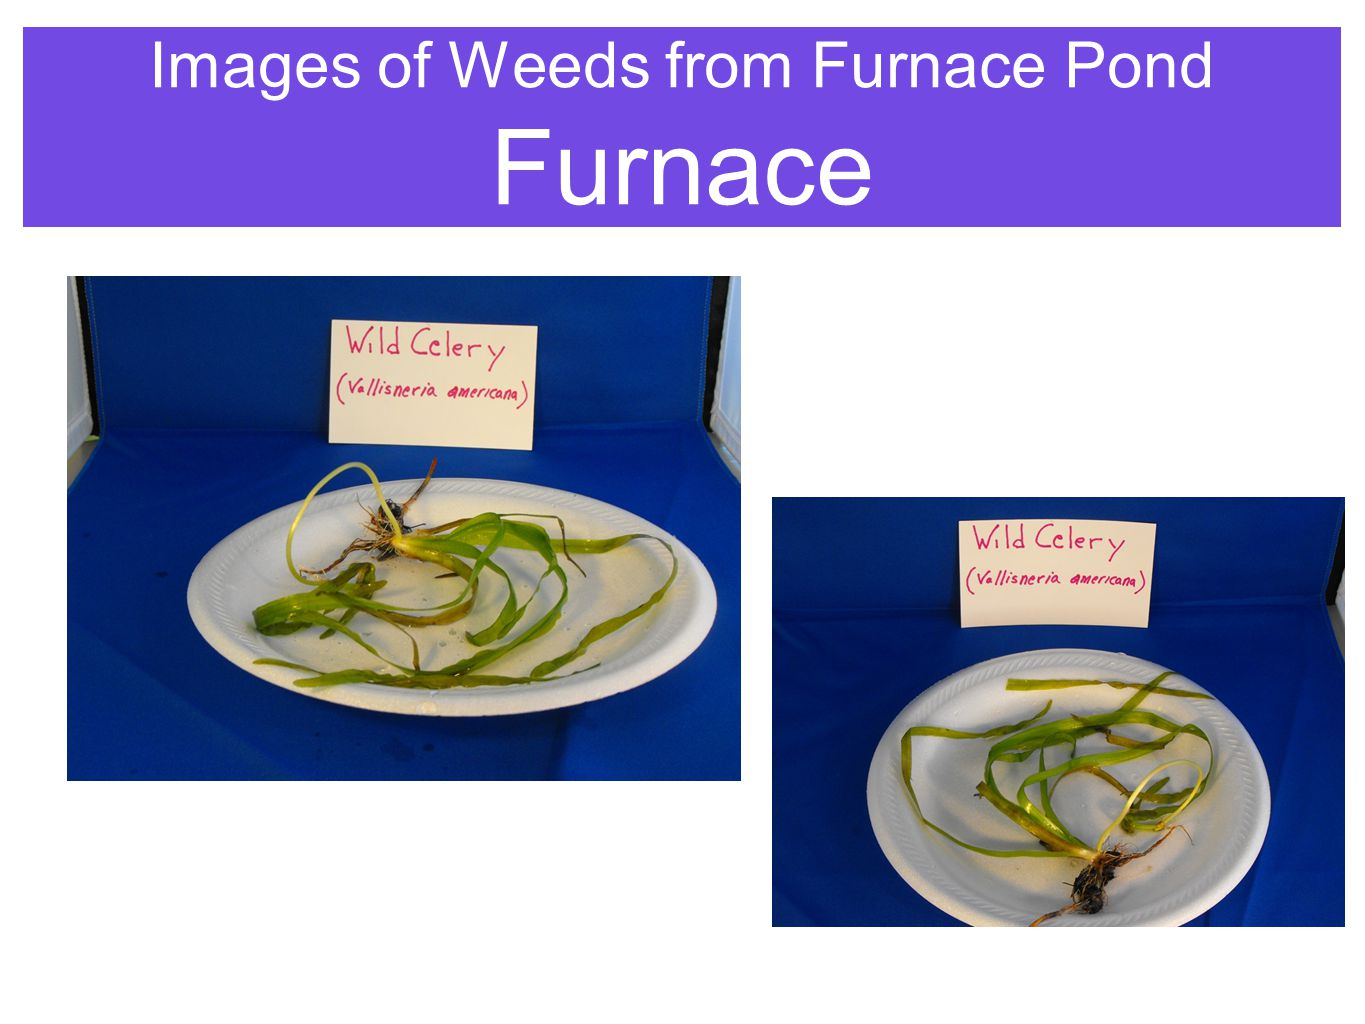 Images of Weeds from Furnace Pond Furnace